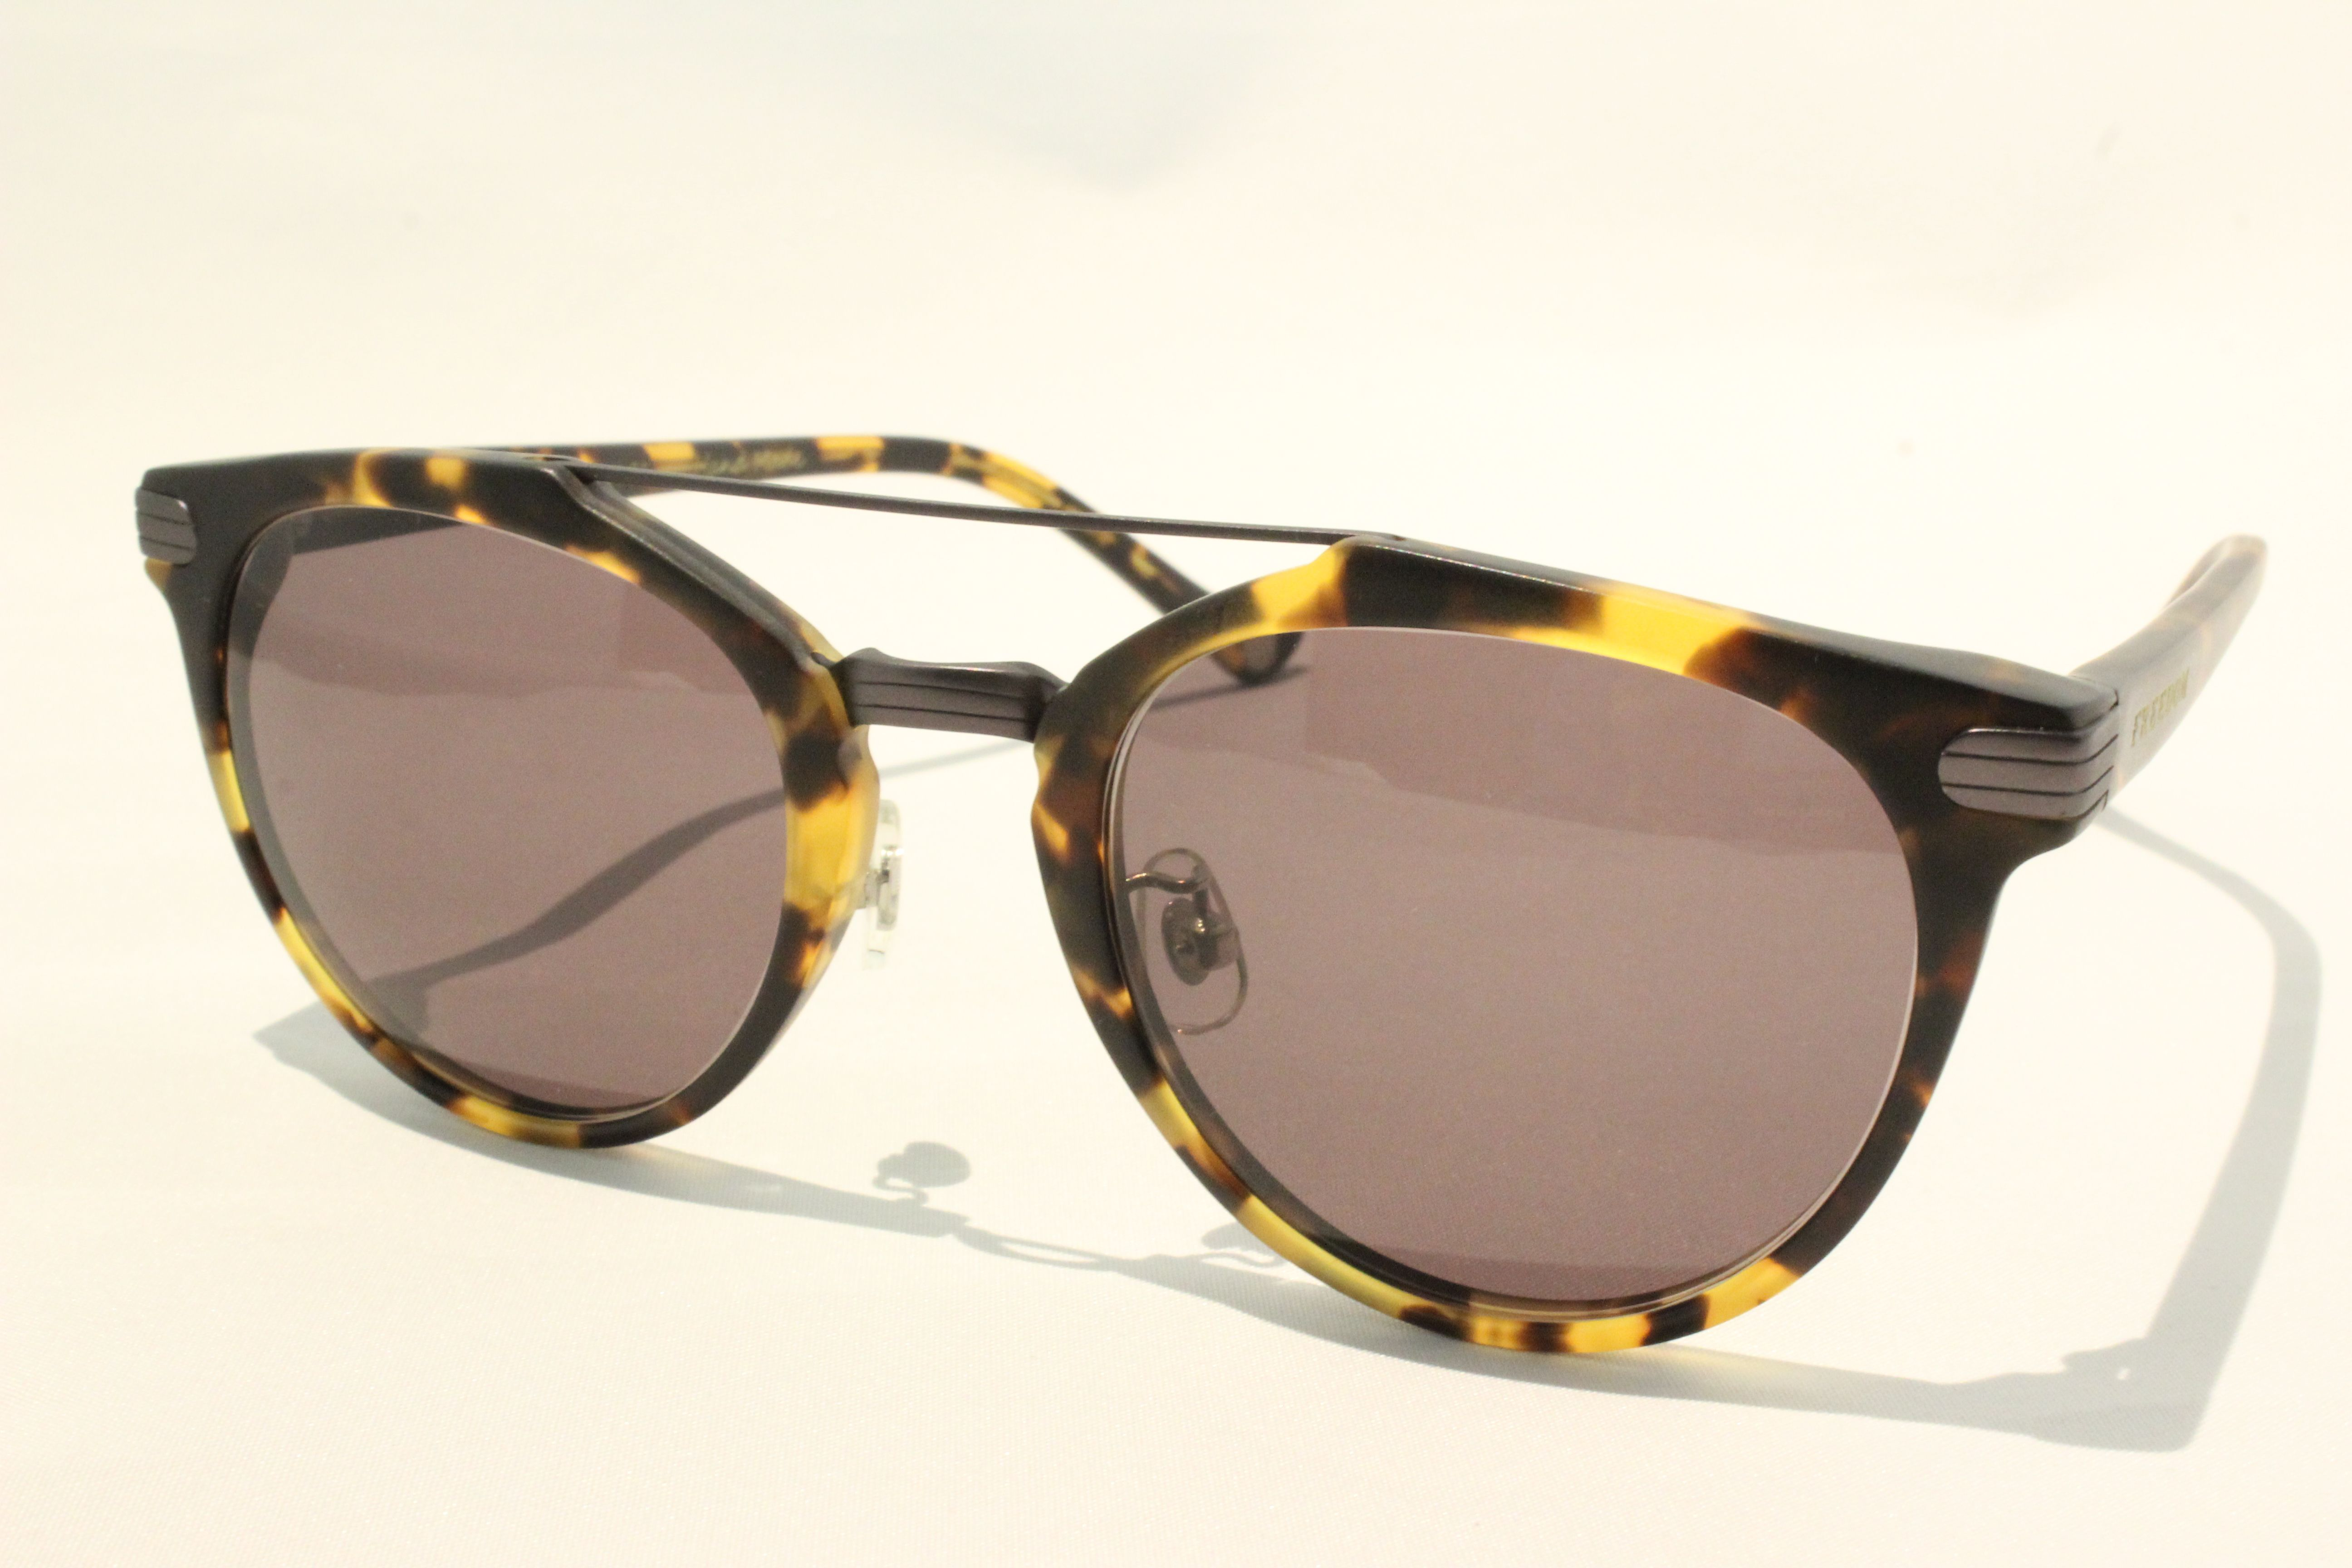 【送料無料】FREEDOM SPECTACLES (フリーダムスペクタクルス) POWELL  COLOR. ( Matte Yellow Tortoise - Matte Dark Gunmetal / Brown )